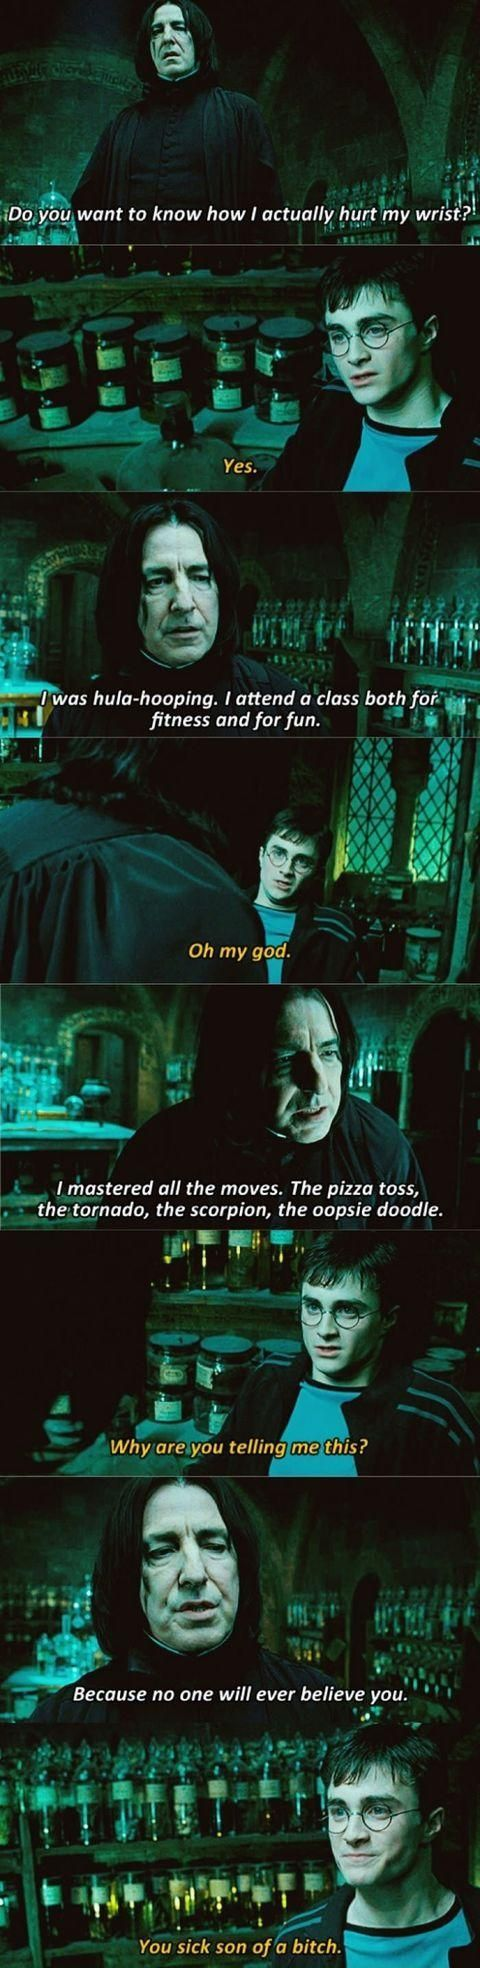 Snape was a genius